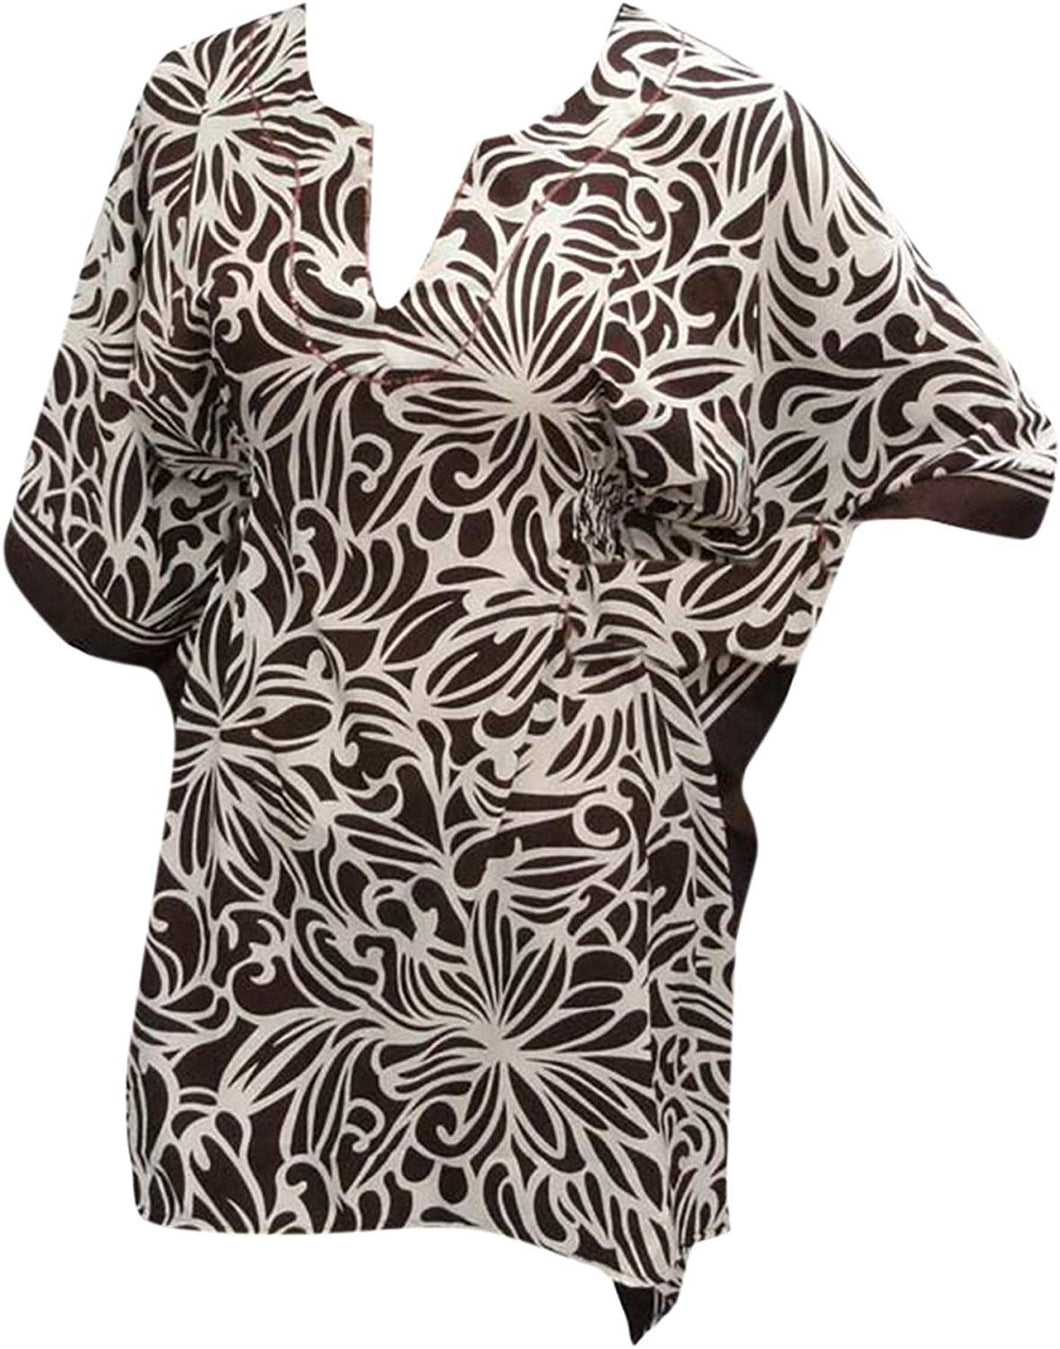 LA LEELA Soft Fabric Printed Cruise Cardigan Cover Up OSFM 8-14 [M-L] Brown_2241